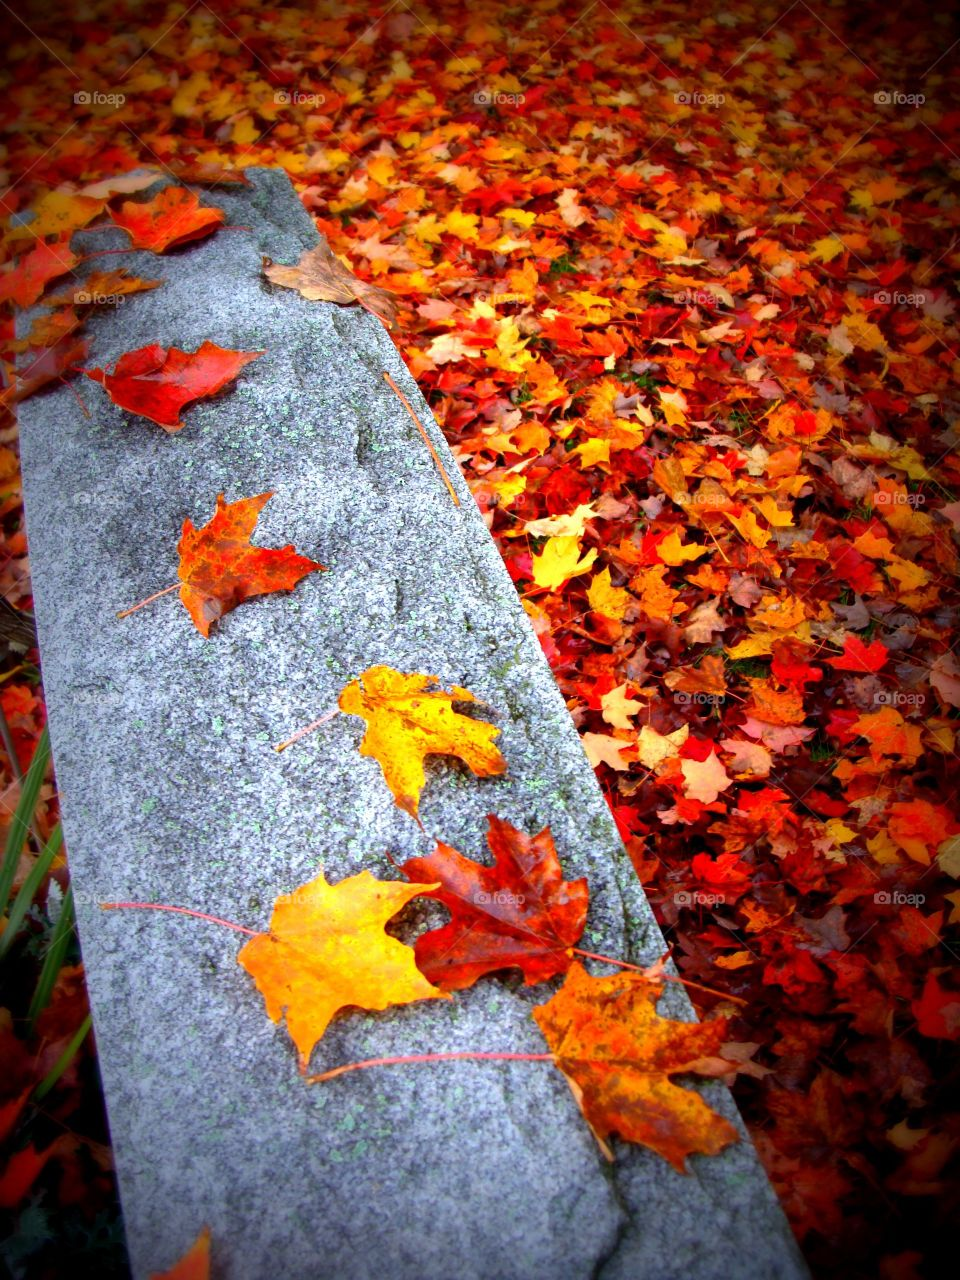 A bed of freshly fallen Autumn leaves on the ground with a few scattered upon the top of a cemetery headstone.